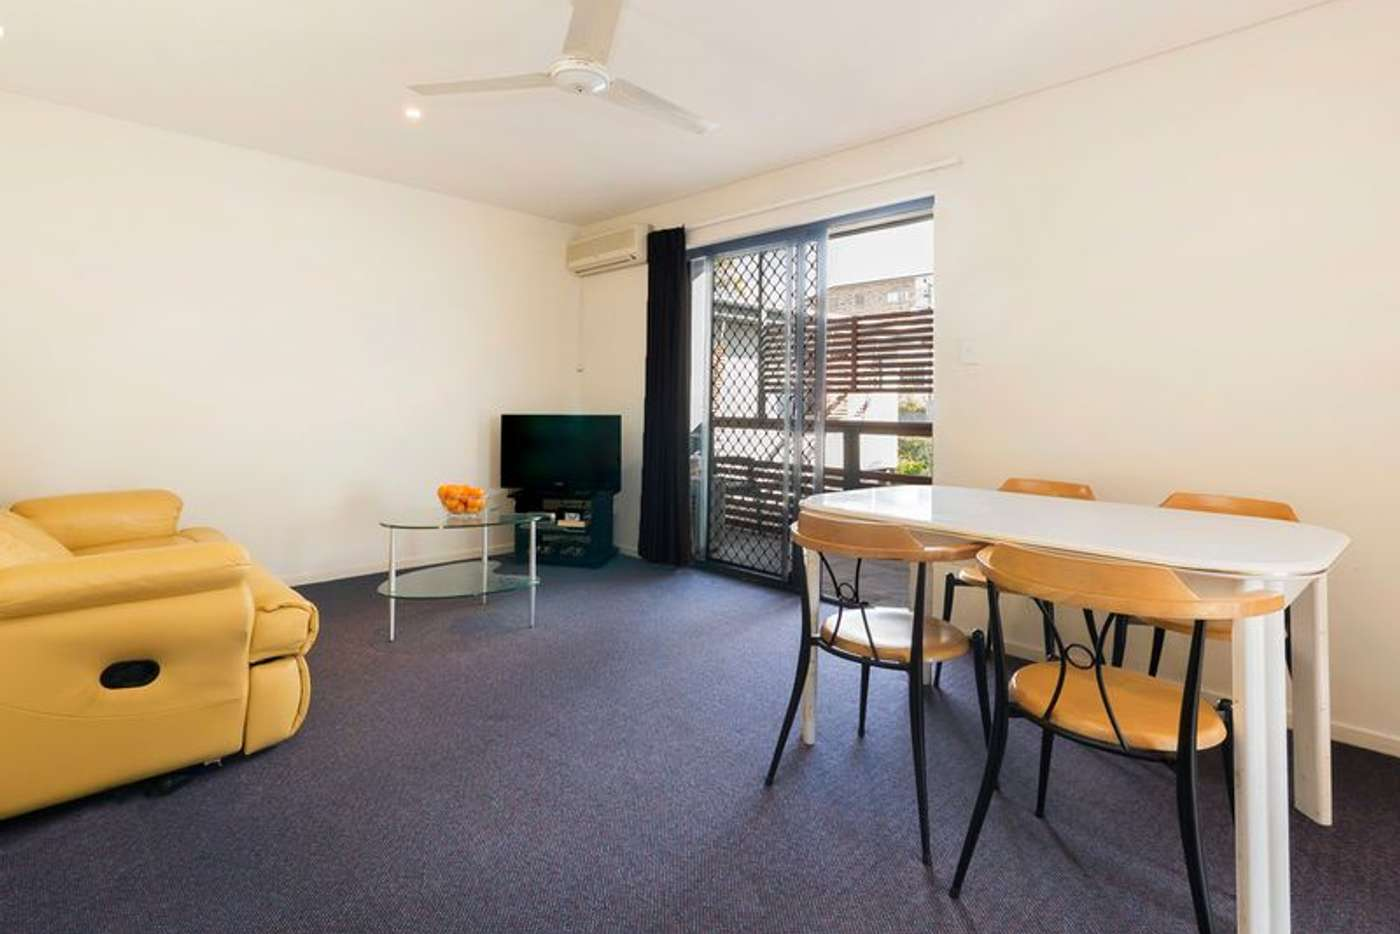 Fifth view of Homely apartment listing, 5/3 Delungra Street, Toowong QLD 4066